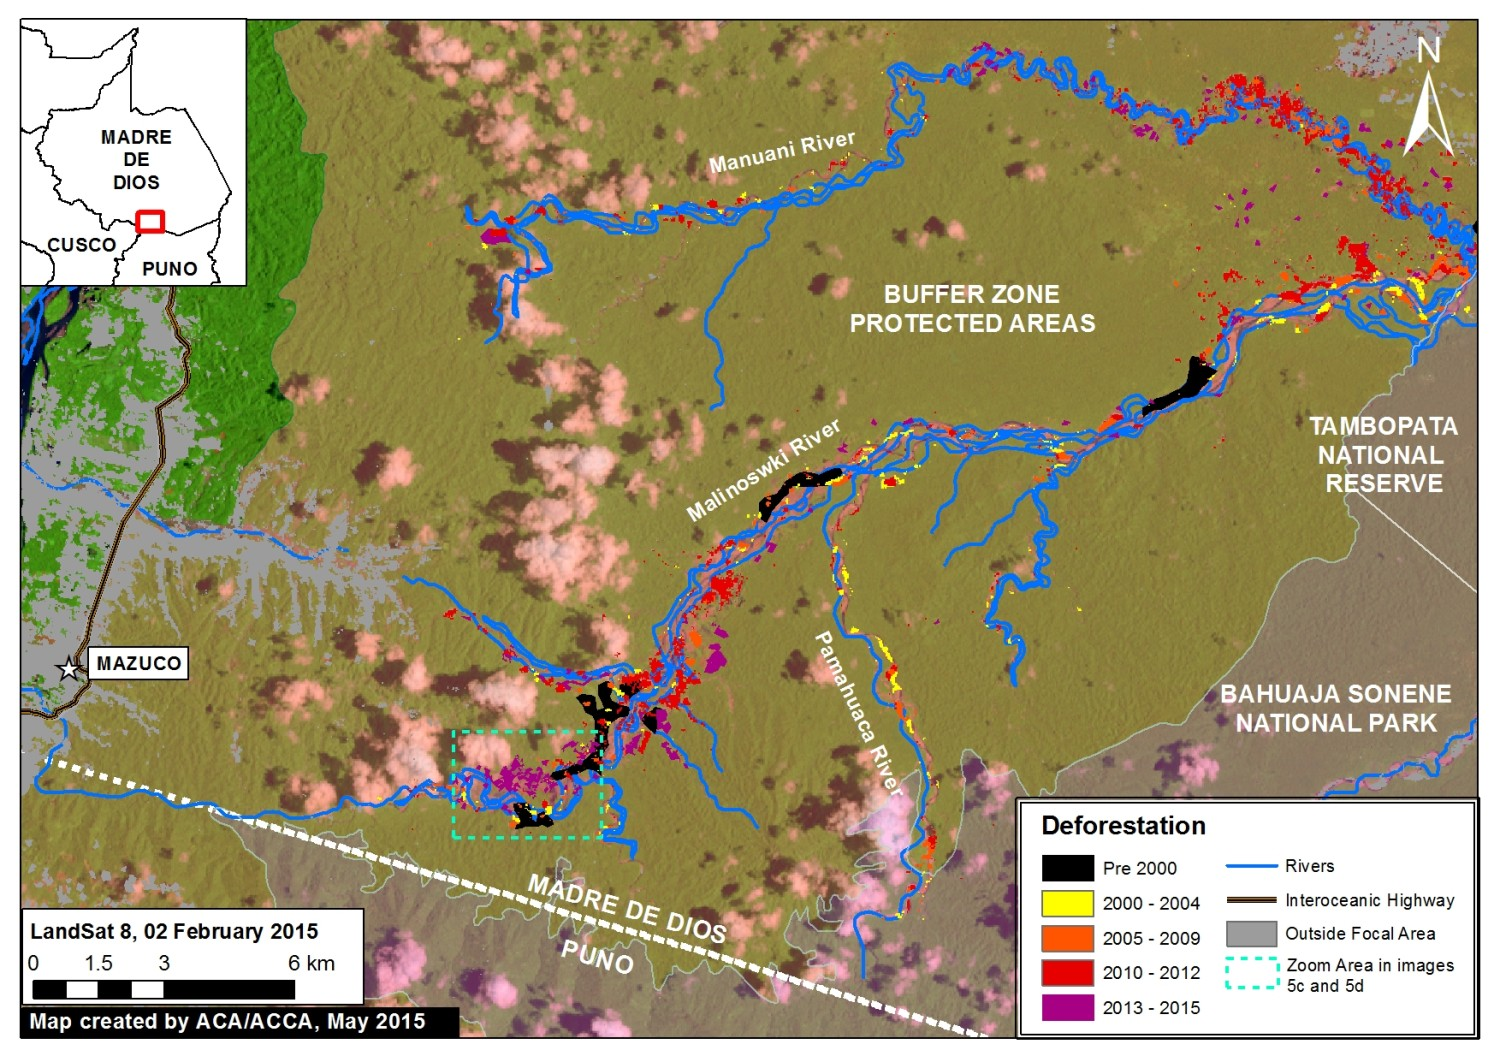 Expanding deforestation from illegal gold mining along the Upper Malinowski River. Key data sources: MINAM, SERNANP, ACCA, USGS, IBC, Hansen/UMD/Google/USGS/NASA.